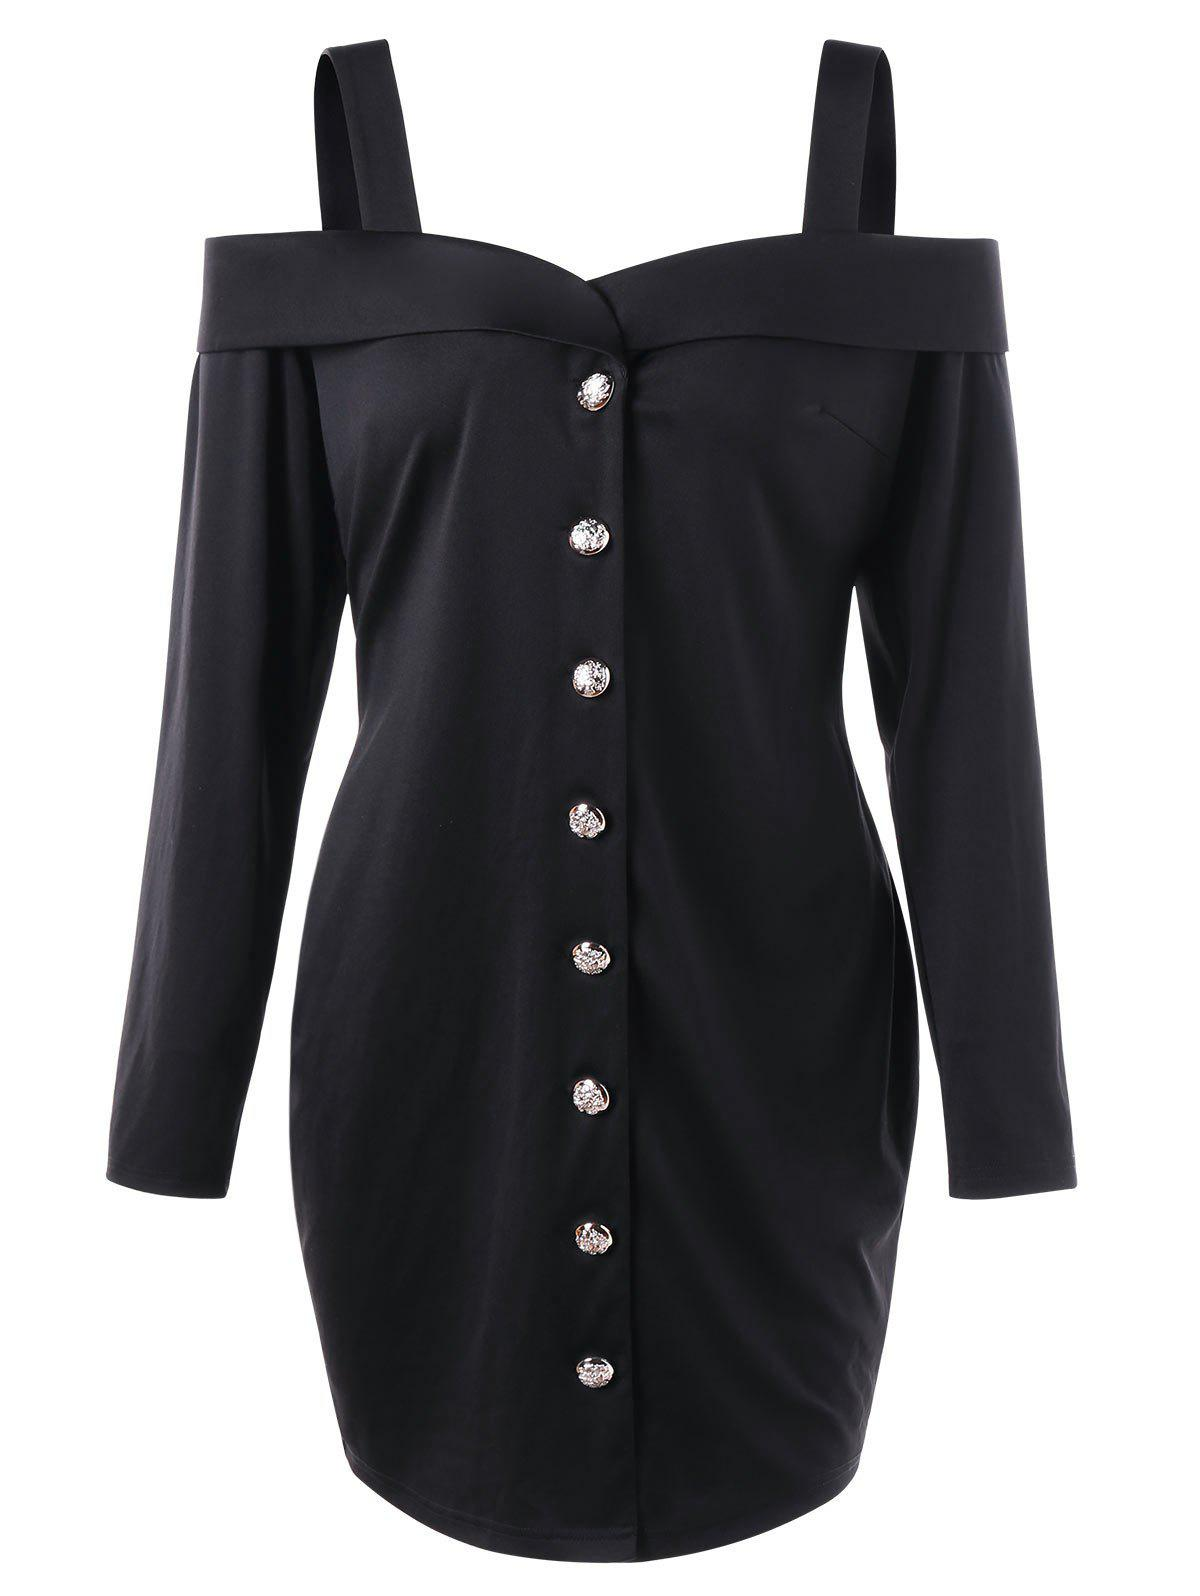 Plus Size Cold Shoulder Long Sleeve DressWOMEN<br><br>Size: 5XL; Color: BLACK; Style: Casual; Material: Polyester,Spandex; Silhouette: Sheath; Dresses Length: Mini; Neckline: Sweetheart Neck; Sleeve Length: Long Sleeves; Pattern Type: Solid; With Belt: No; Season: Fall; Weight: 0.3500kg; Package Contents: 1 x Dress;